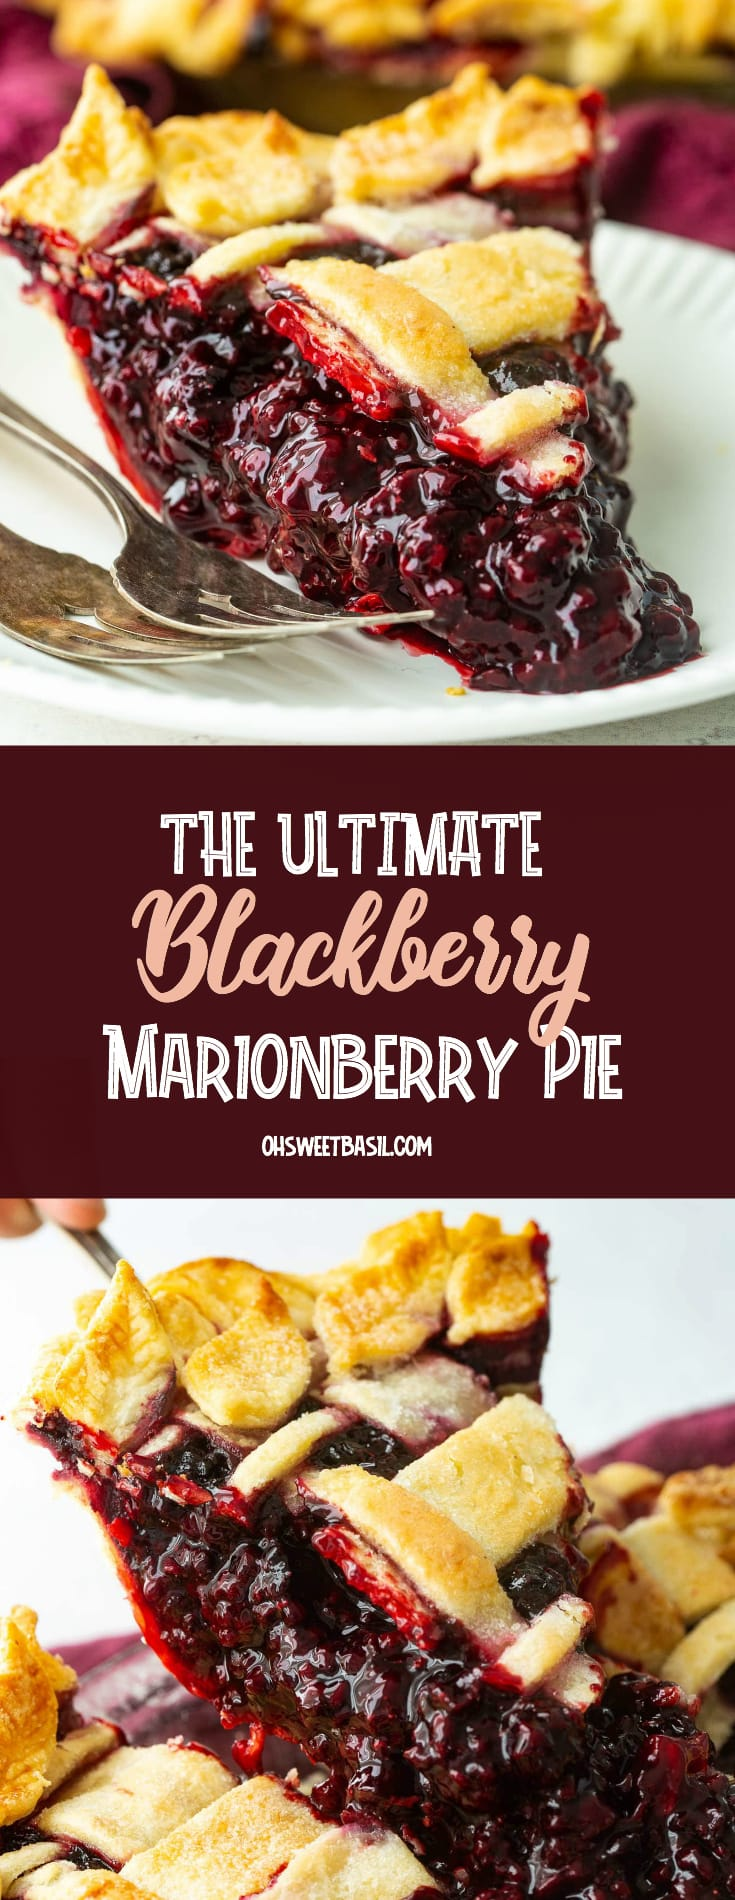 a slice of marionberry pie on a white place with two forks